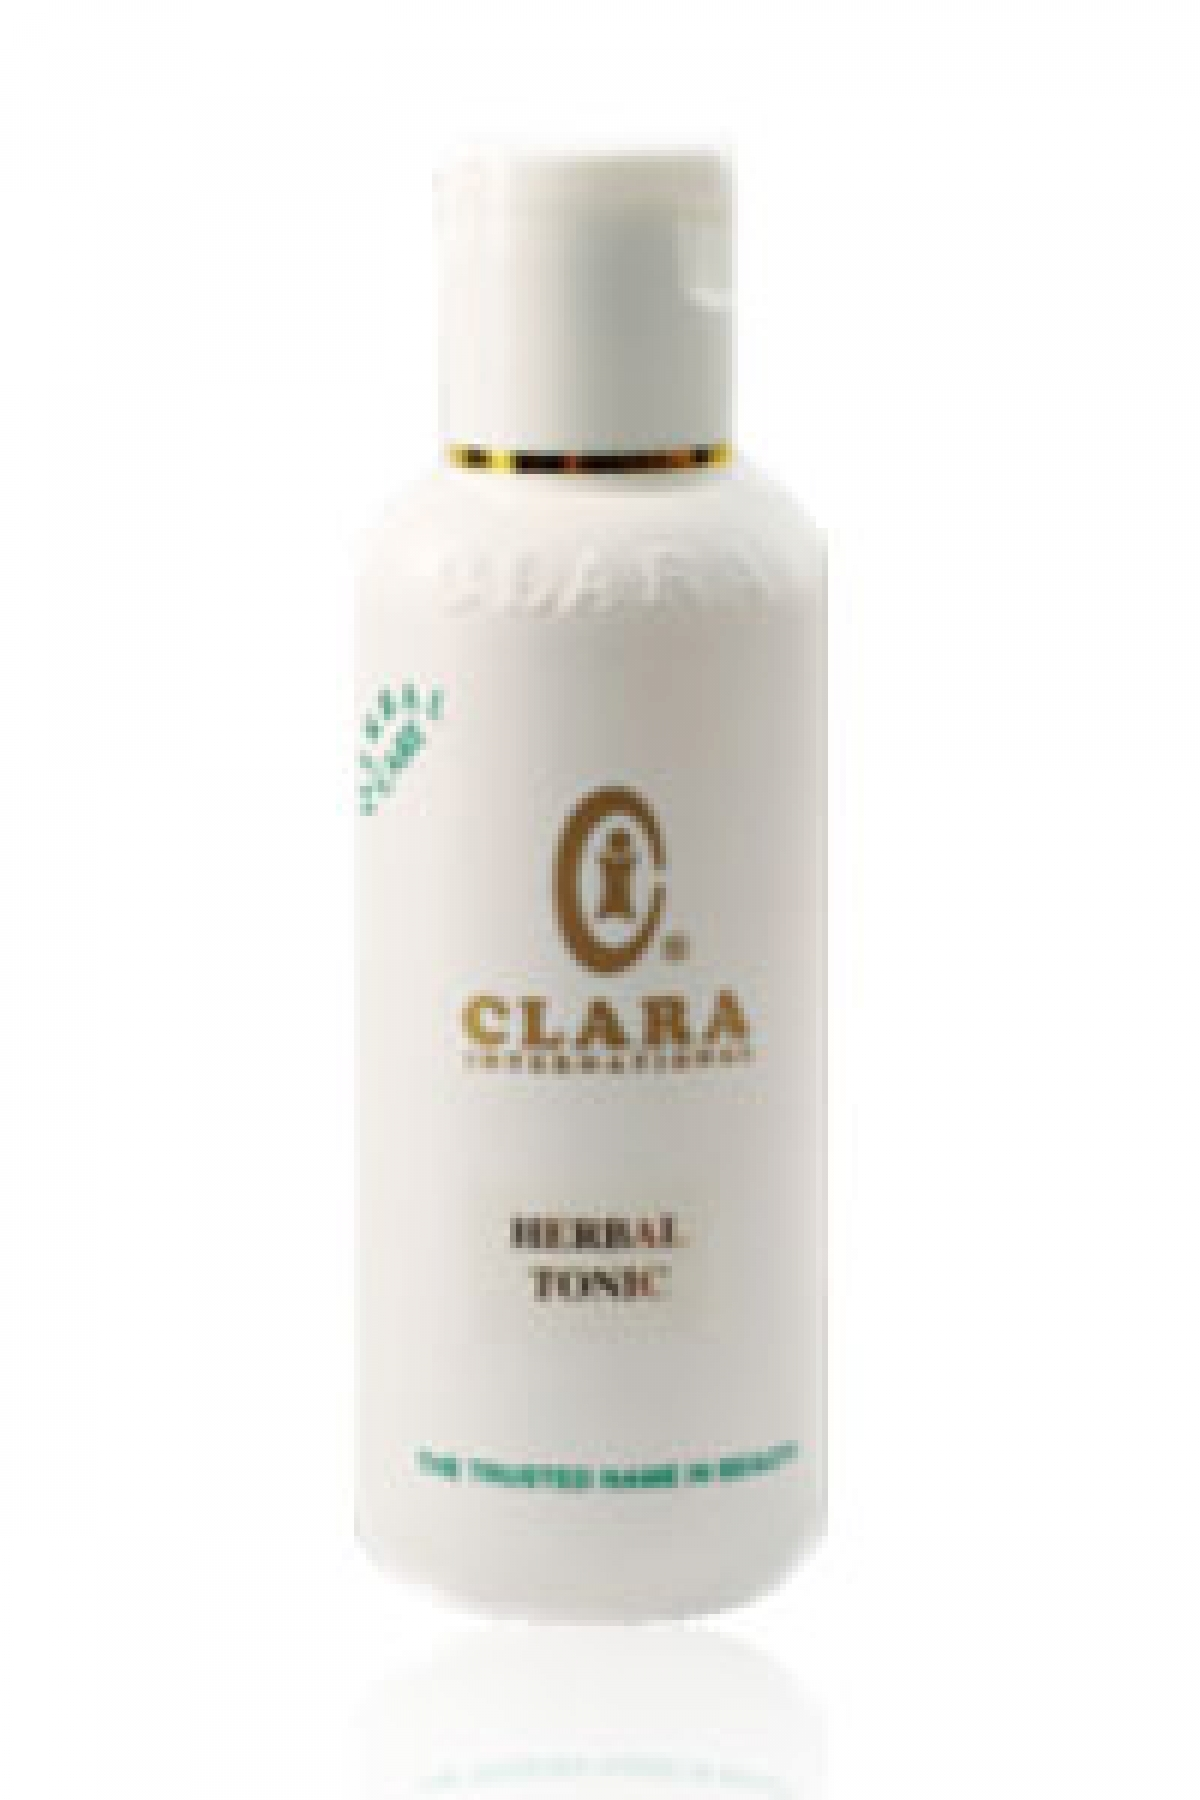 CLARA Herbal Tonic (150ml)